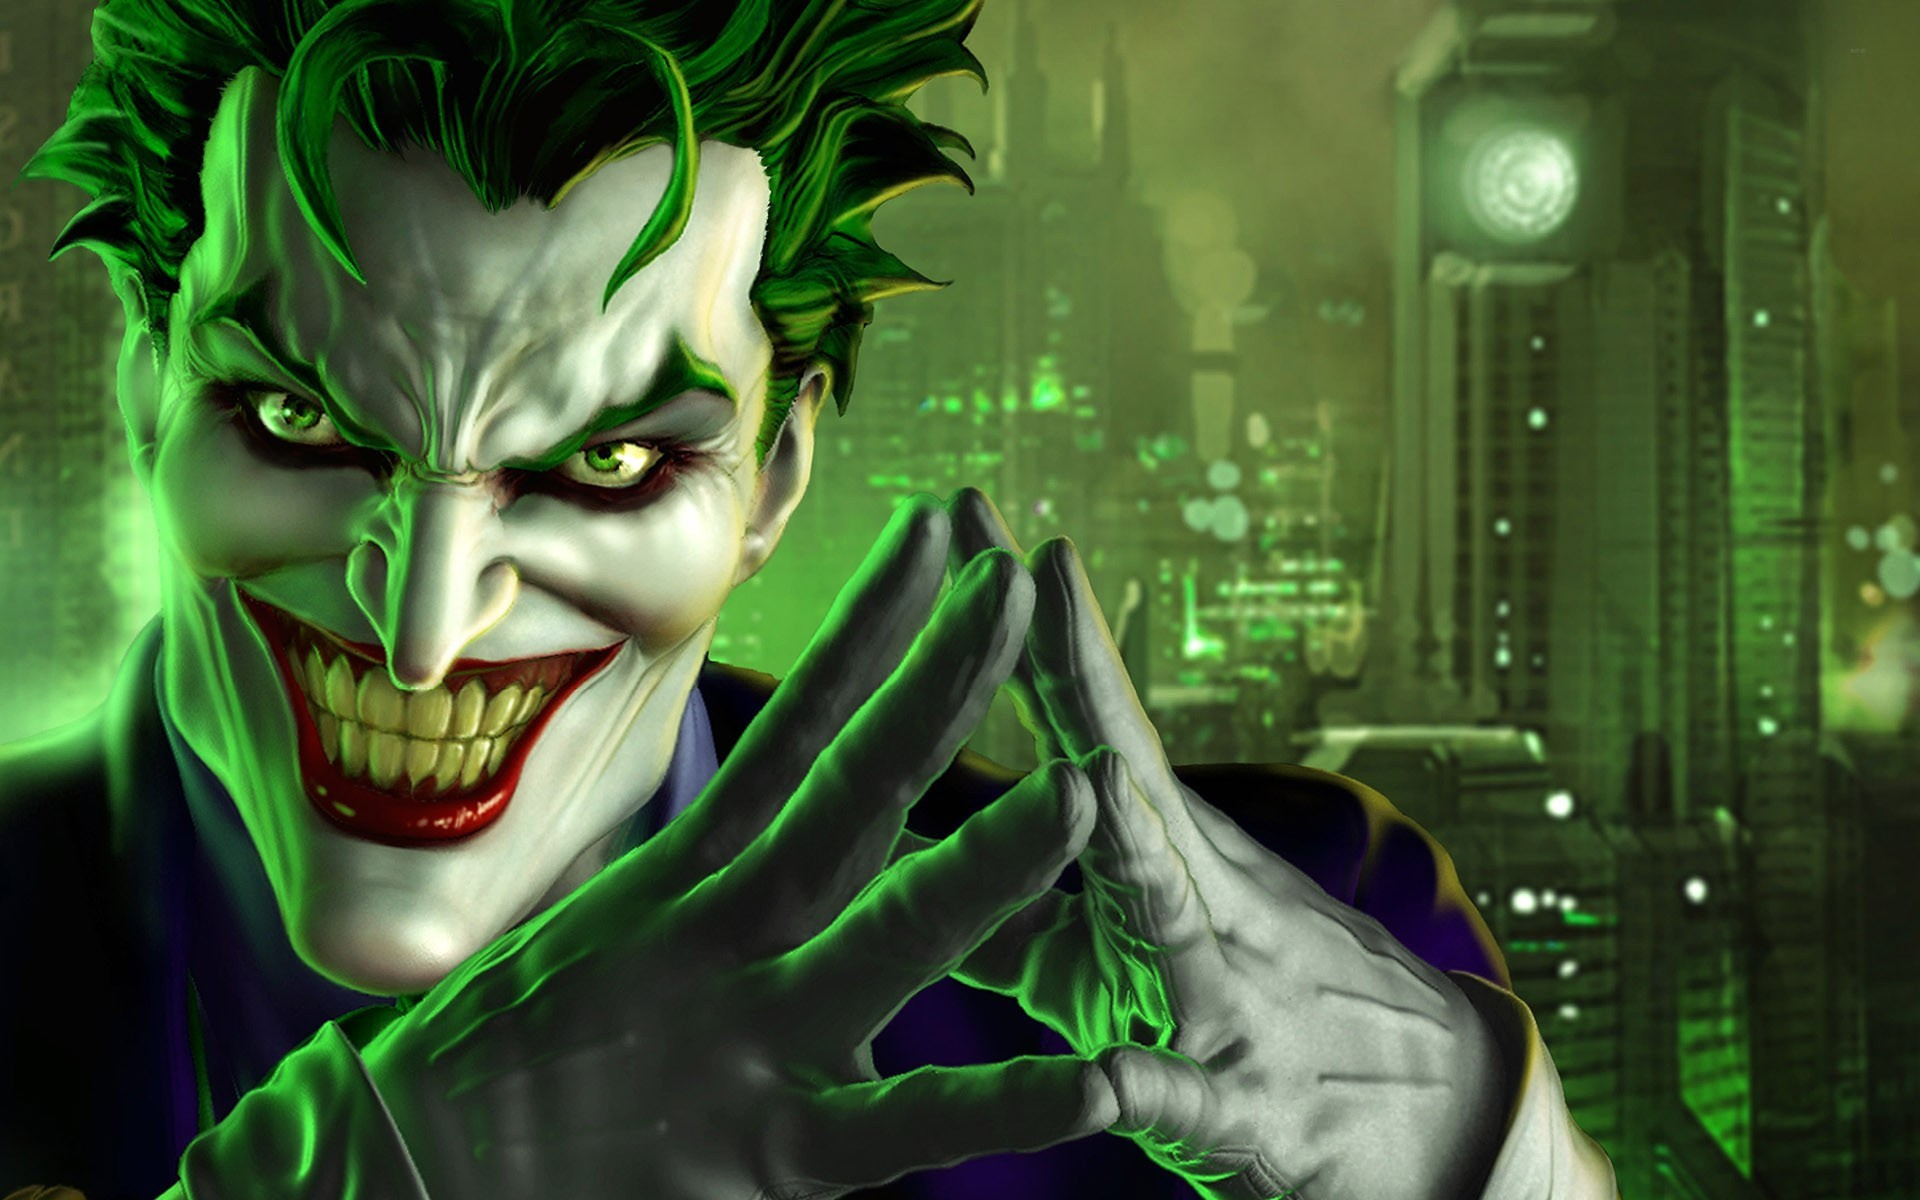 Joker windows wallpaper